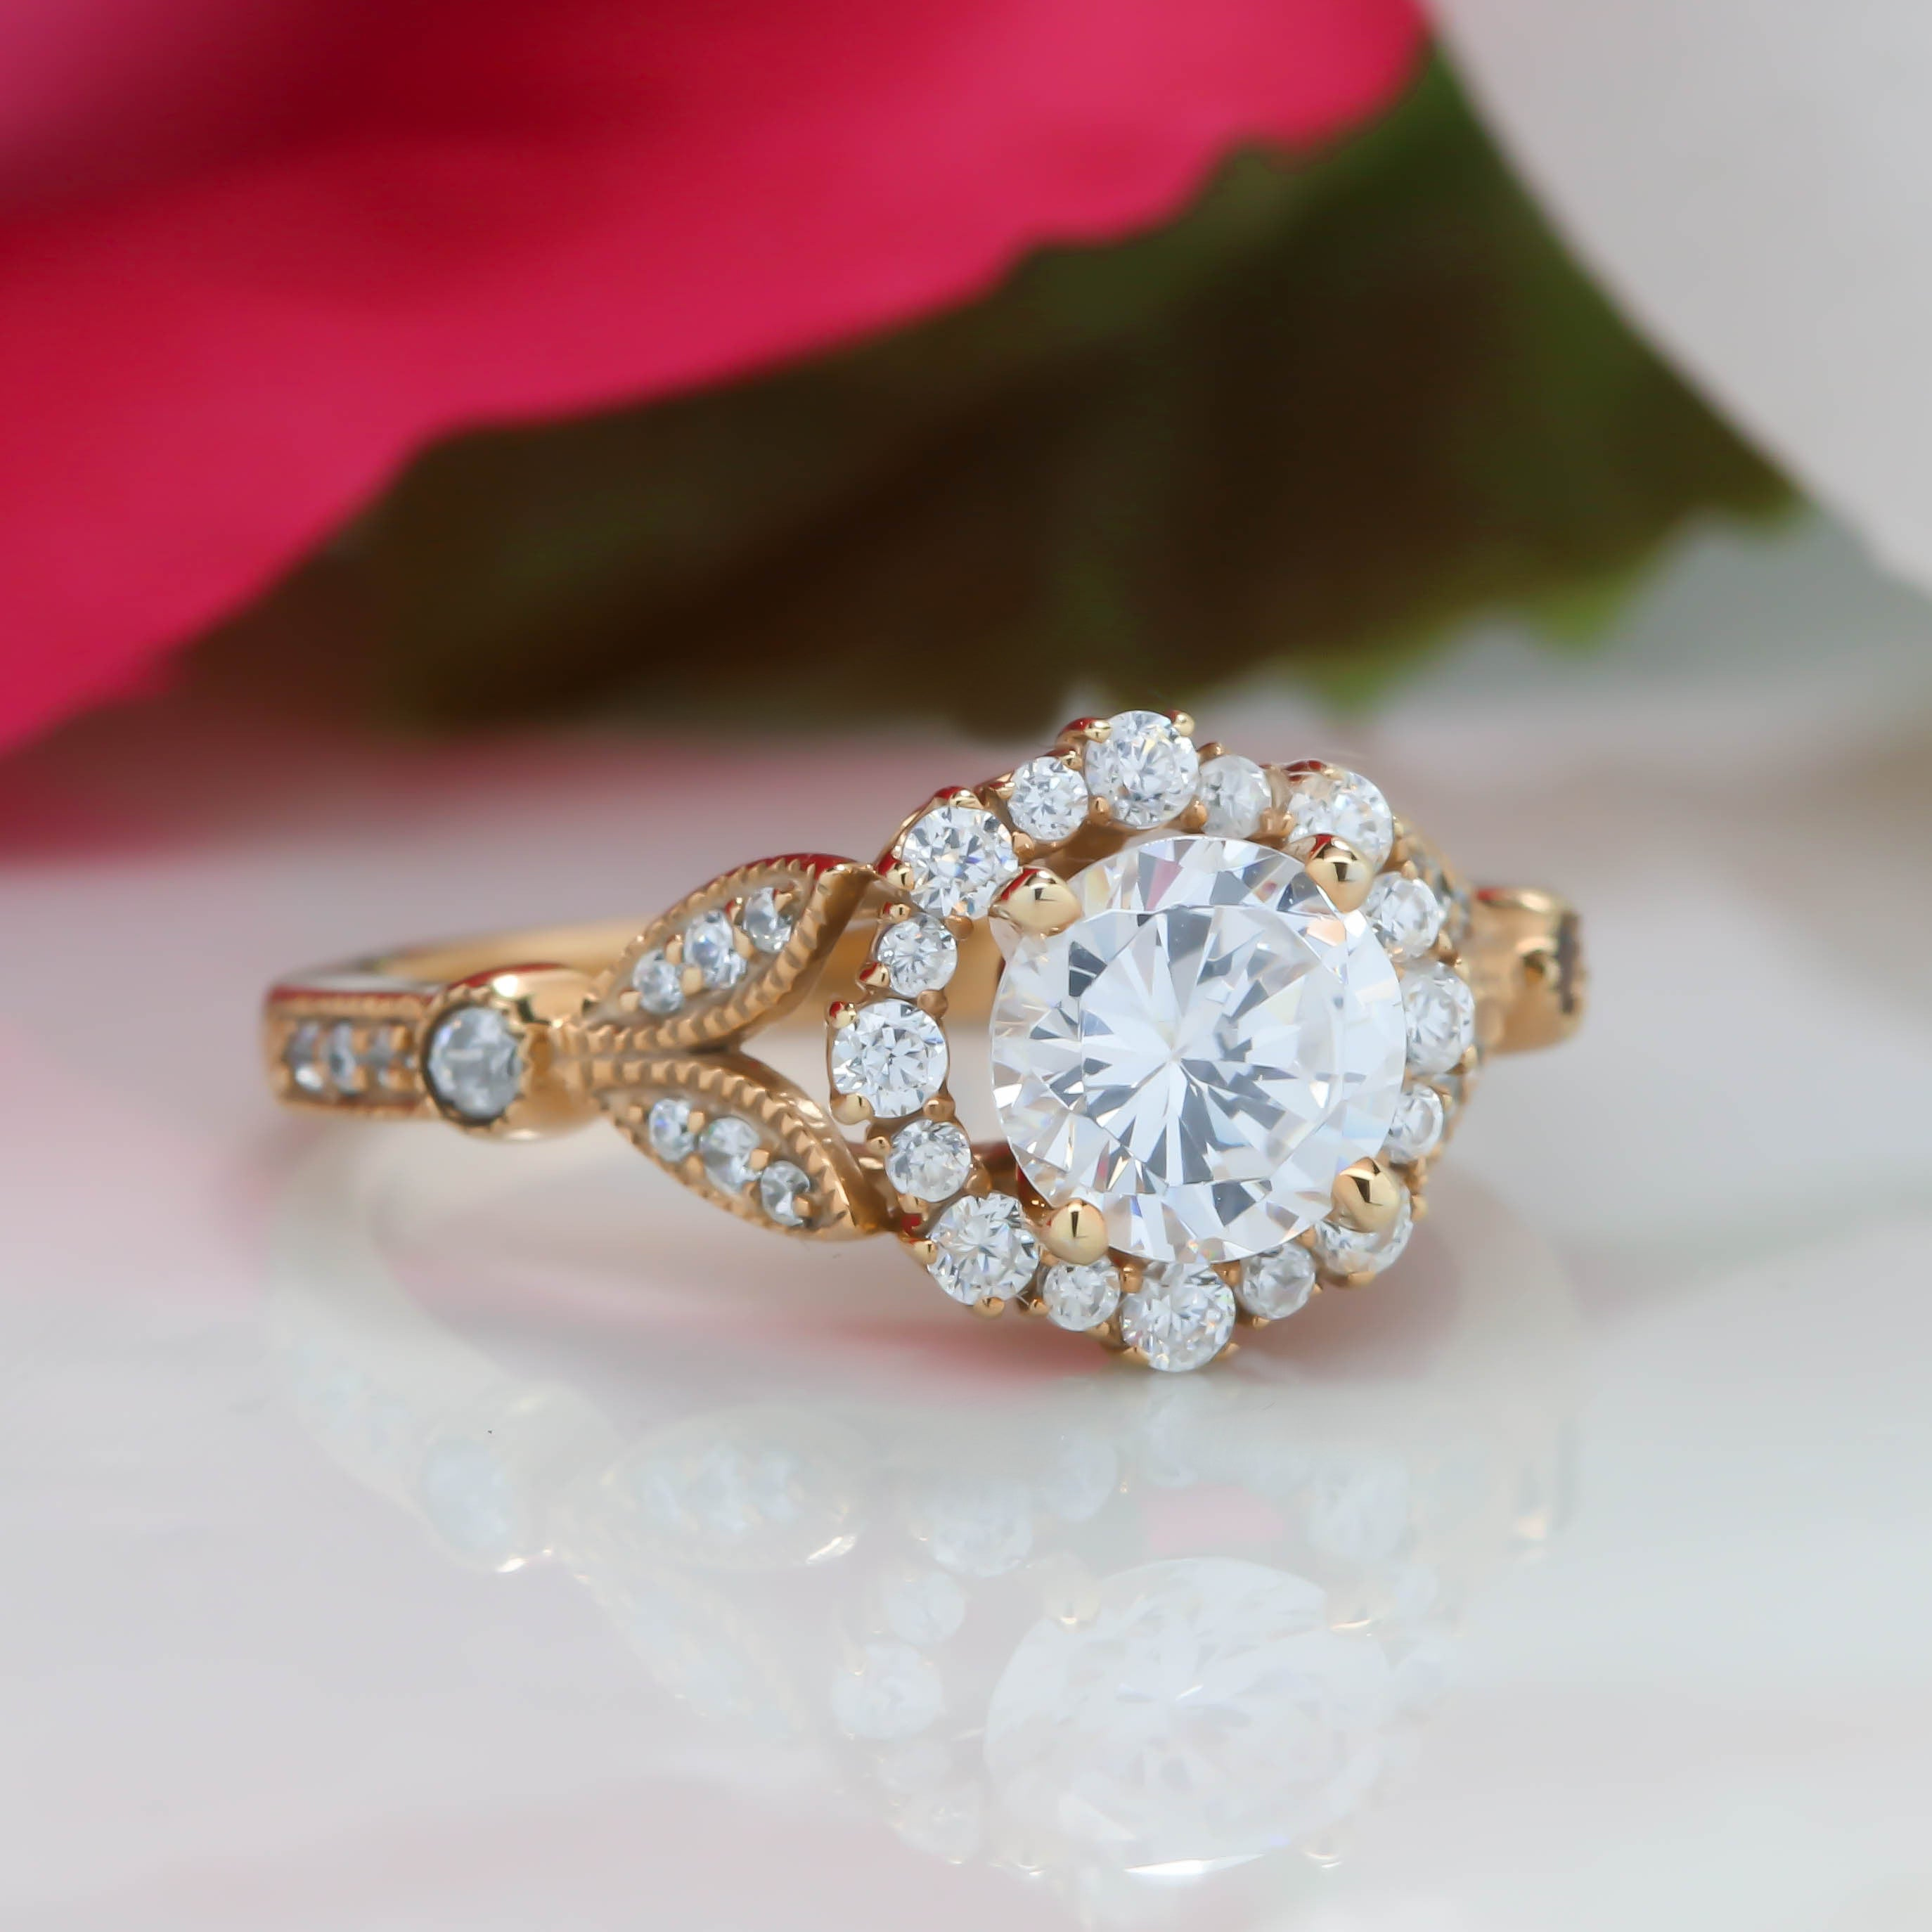 Vintage Floral Style Halo Diamond and Moissanite Engagement Ring